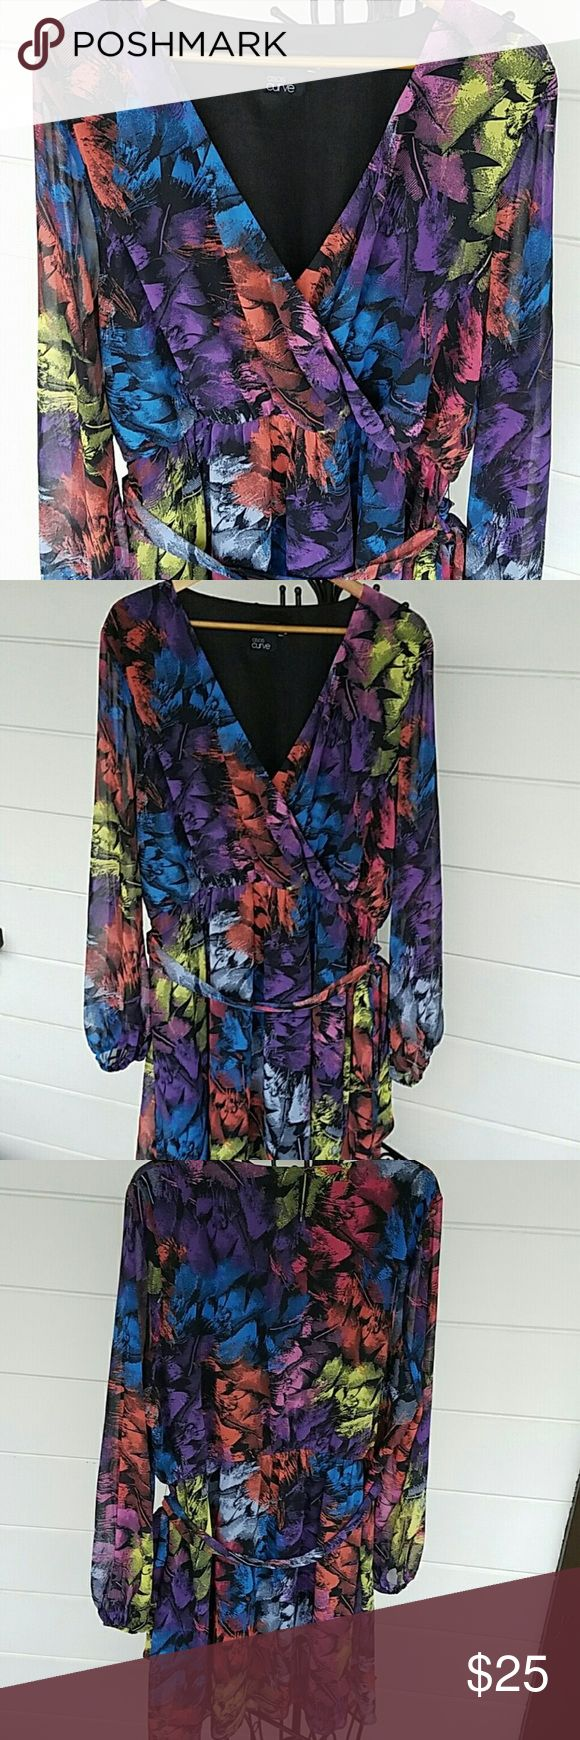 """Multicolored ASOS Curve cinched in waist dress On trend with the cinched in waist. I am a size 20 but the arm sleeves were too long for me and the dress came to knees. (I'm5'6""""). Lovely floaty top fabric with black underlining for seamless curve showing. ASOS Curve Dresses Midi"""